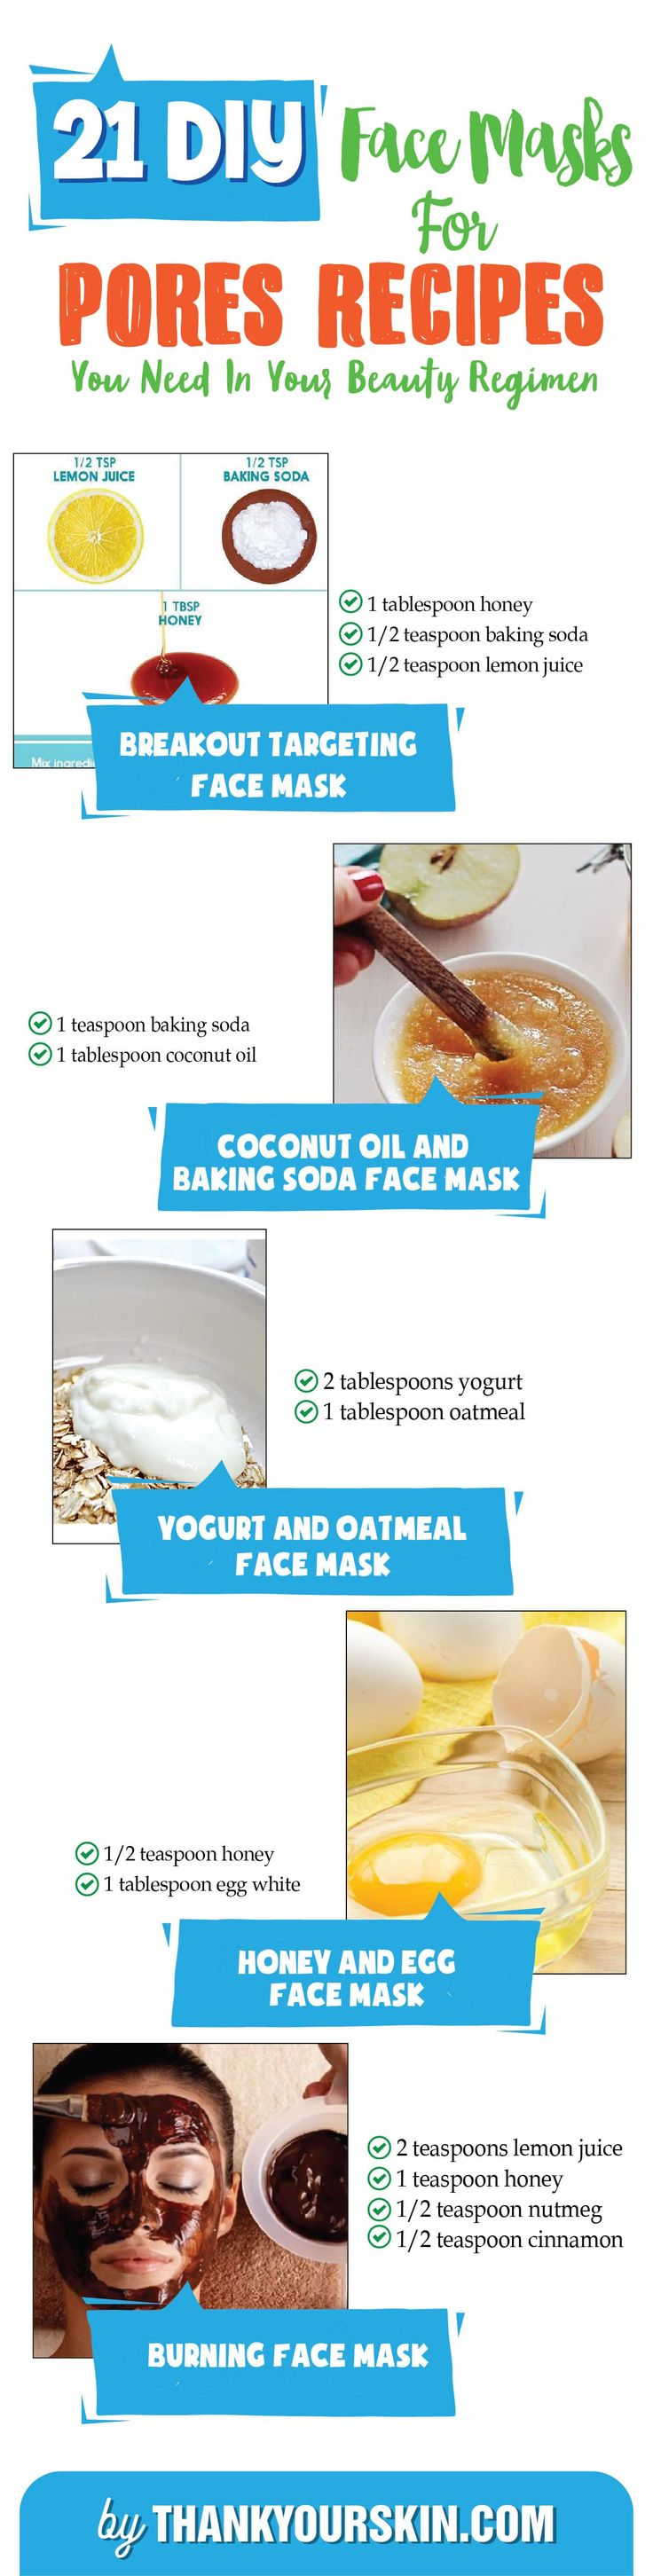 DIY Face Mask for Pores - Easy DIY Pore minimizers that work - Large pores remedies #FaceMaskforPores #PoreMinimizer #ThankYourSkin